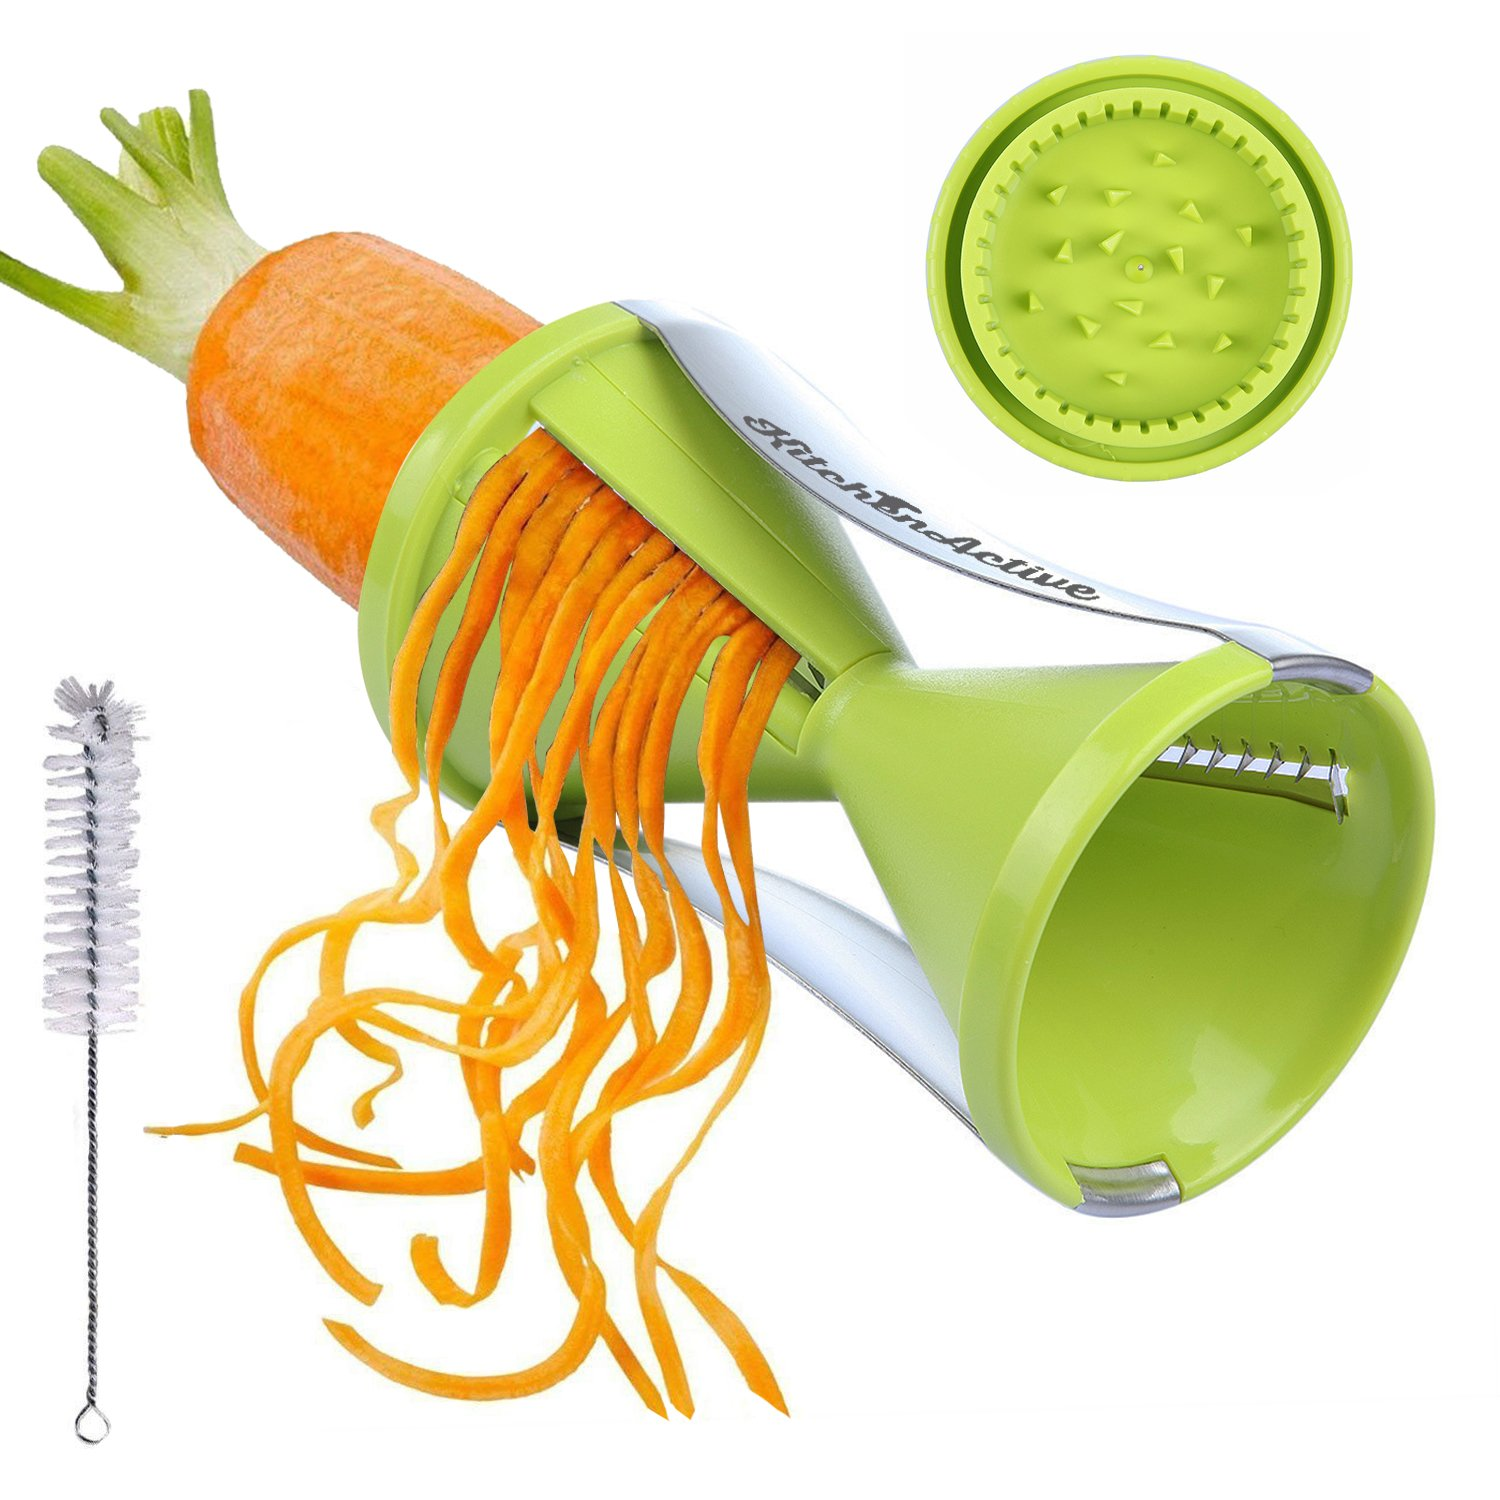 Kitchen Active Spiralizer Spiral Slicer Zucchini Spaghetti Pasta Maker Green